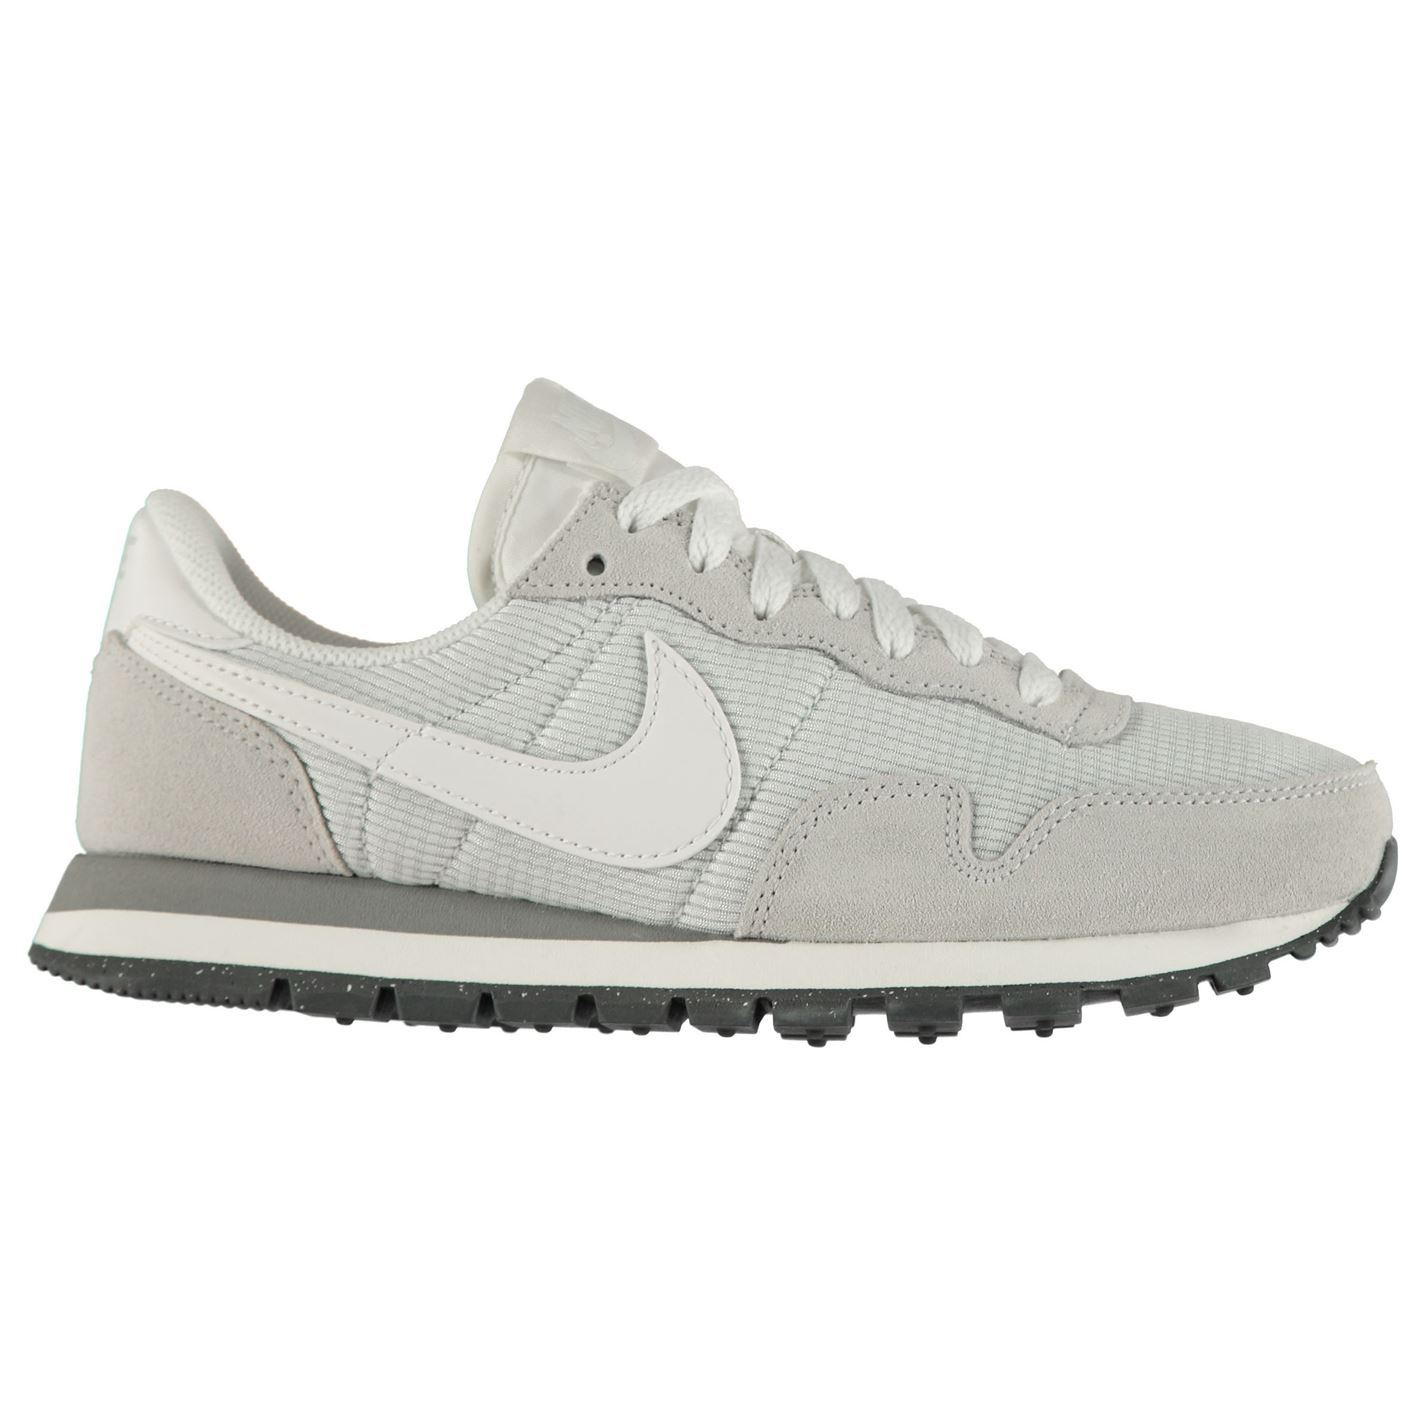 coupe classique cd671 f6a0d Nike Air Pegasus Running Shoes Womens Jogging Trainers ...